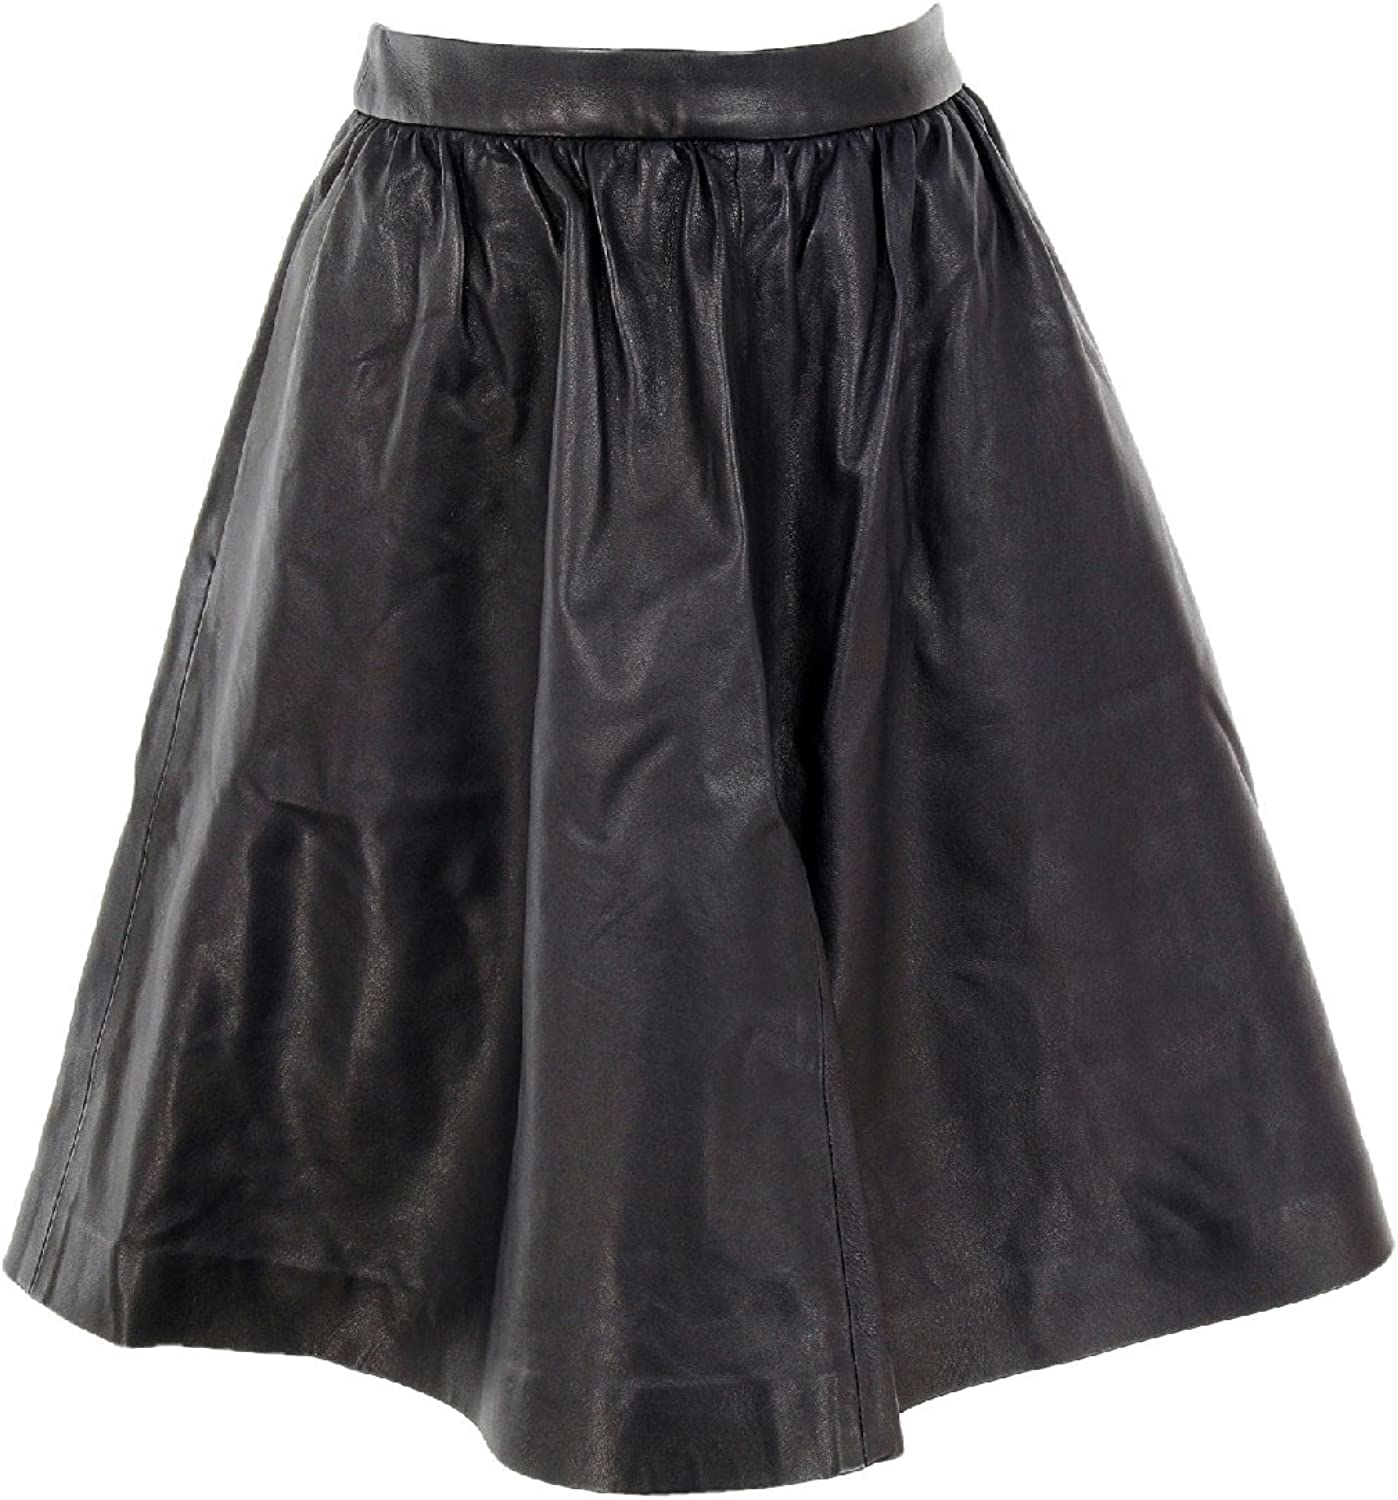 J Crew Collection Navy Leather Skirt Size 6 Sample